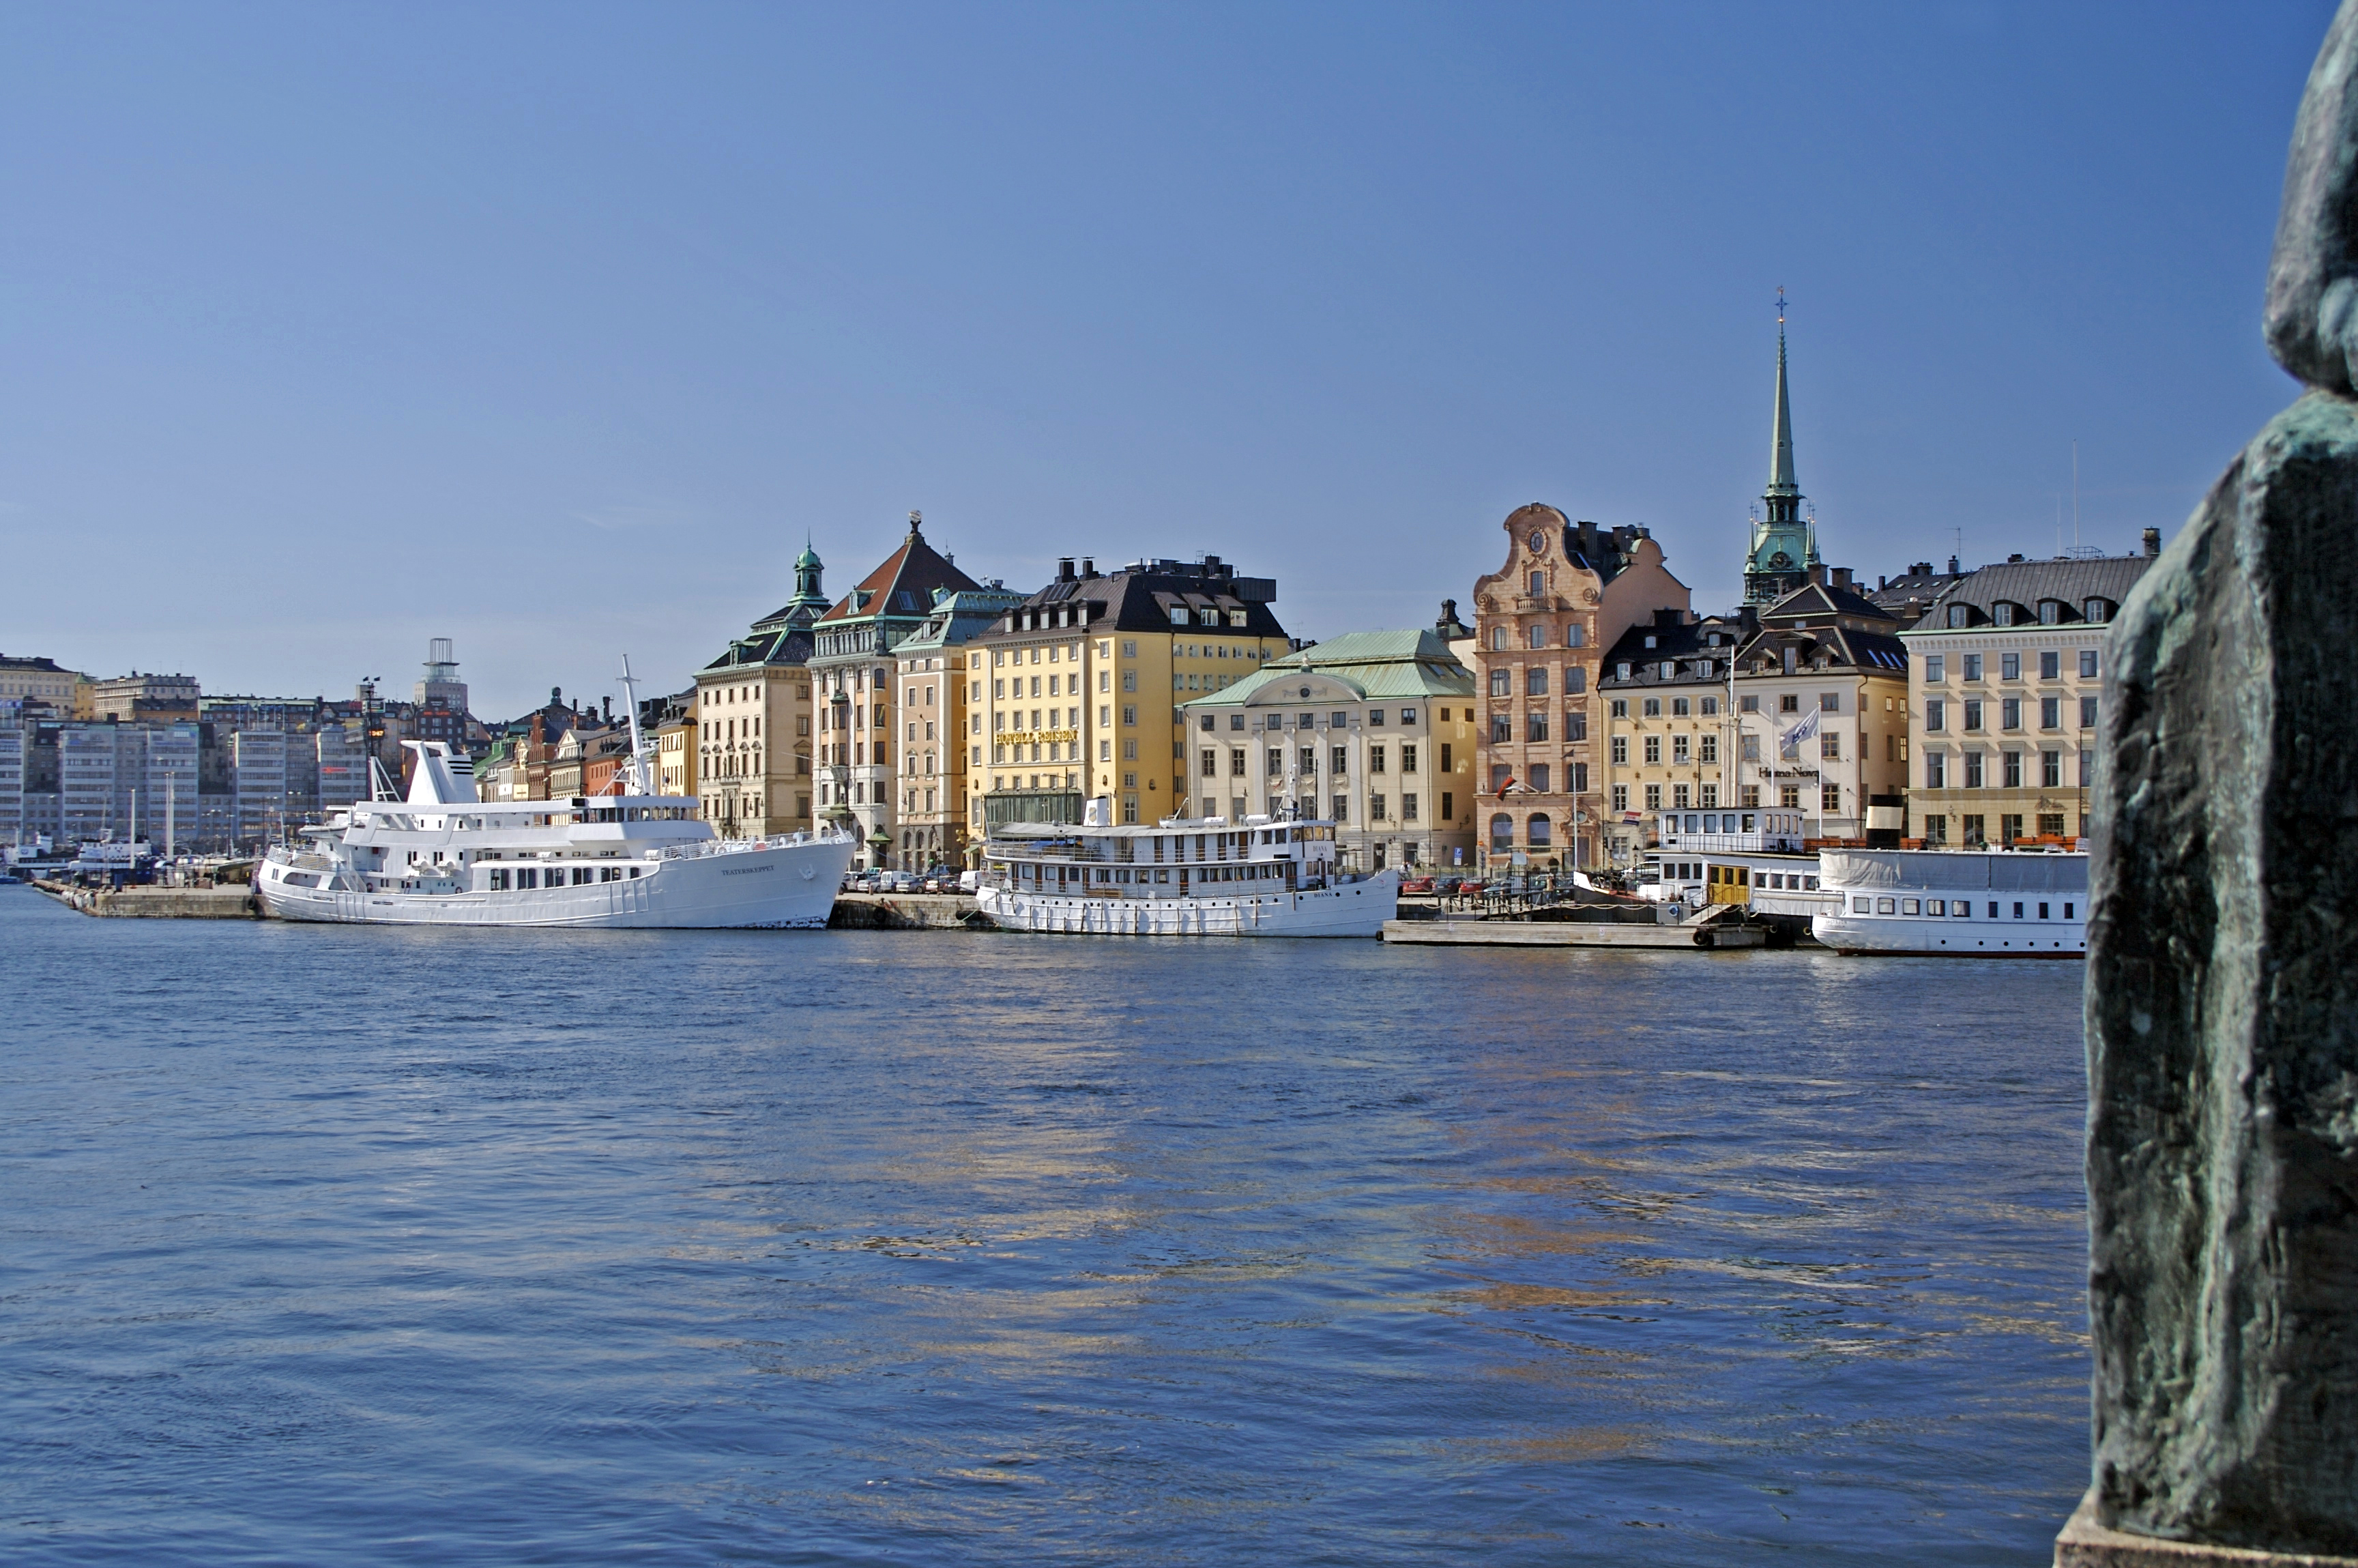 stockholm across the water image - free stock photo - public domain photo